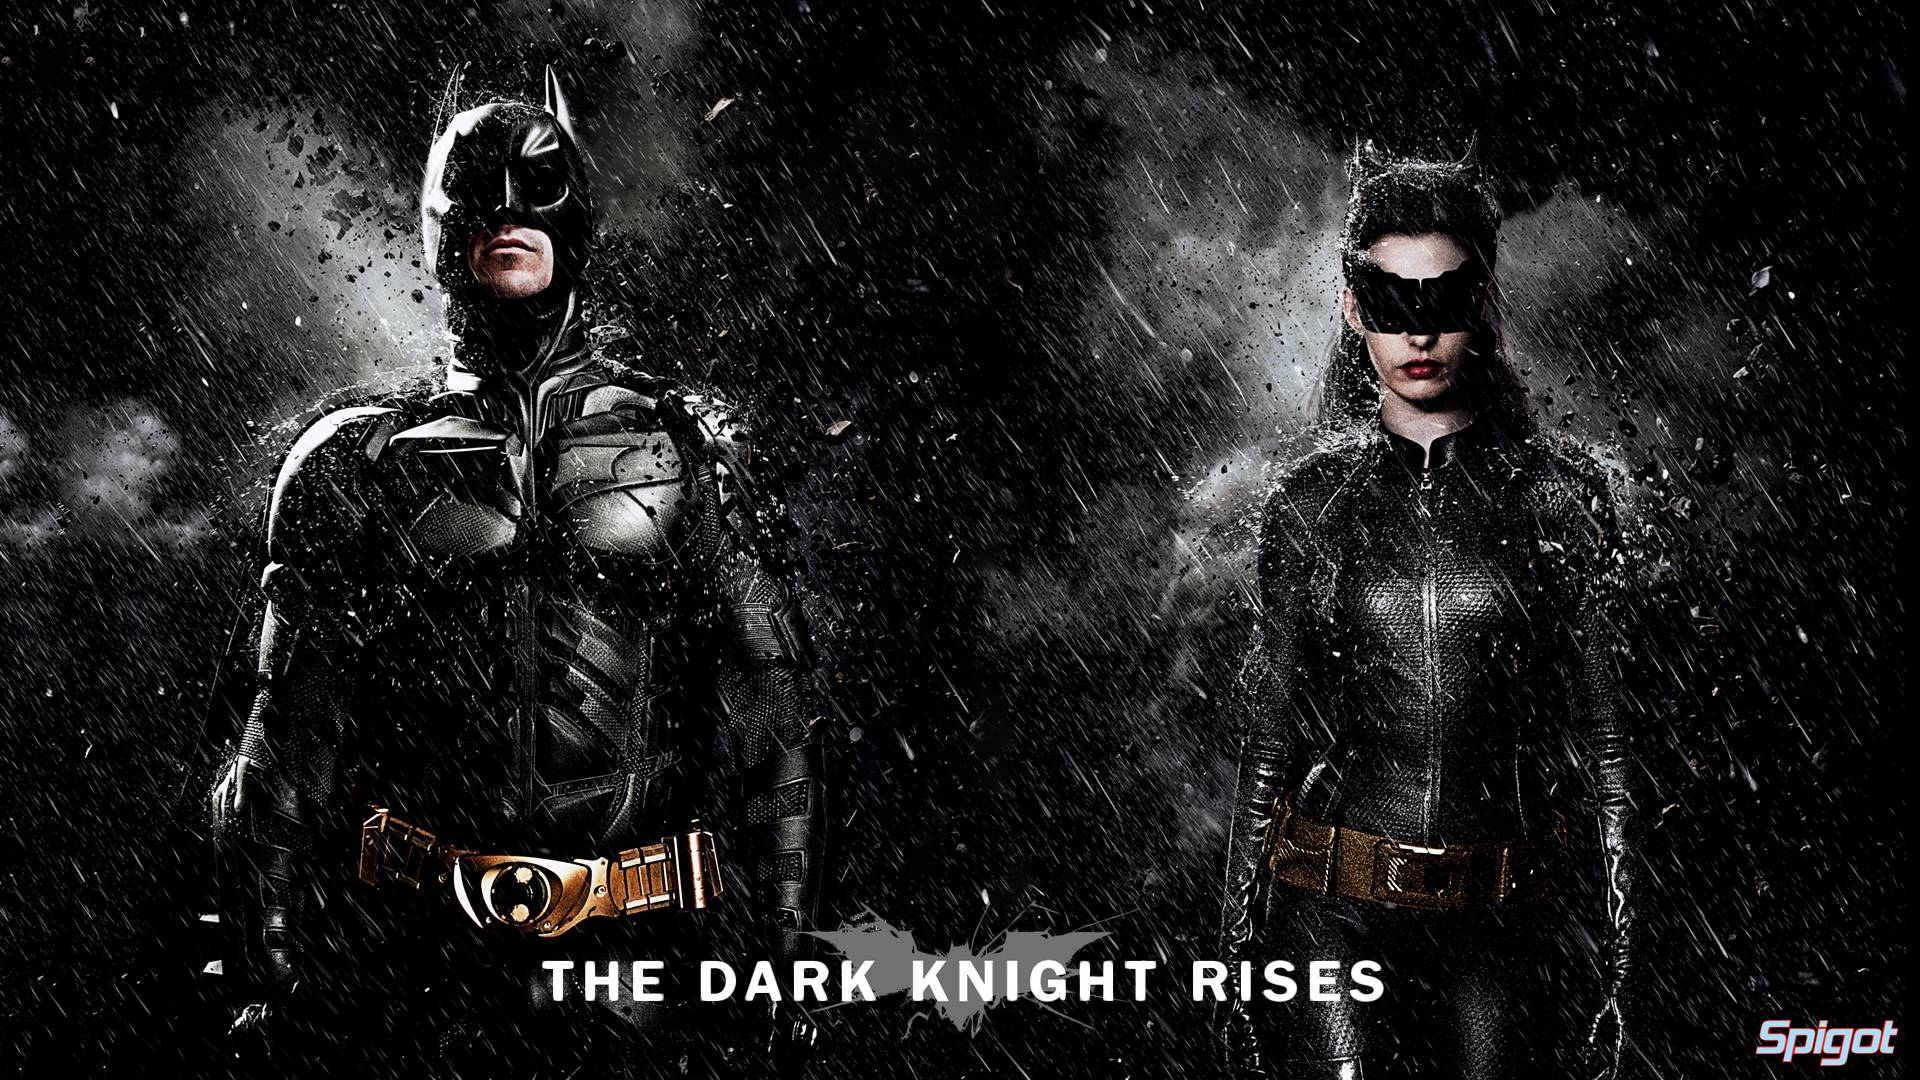 The Dark Knight Rises Wallpapers HD - Wallpaper Cave